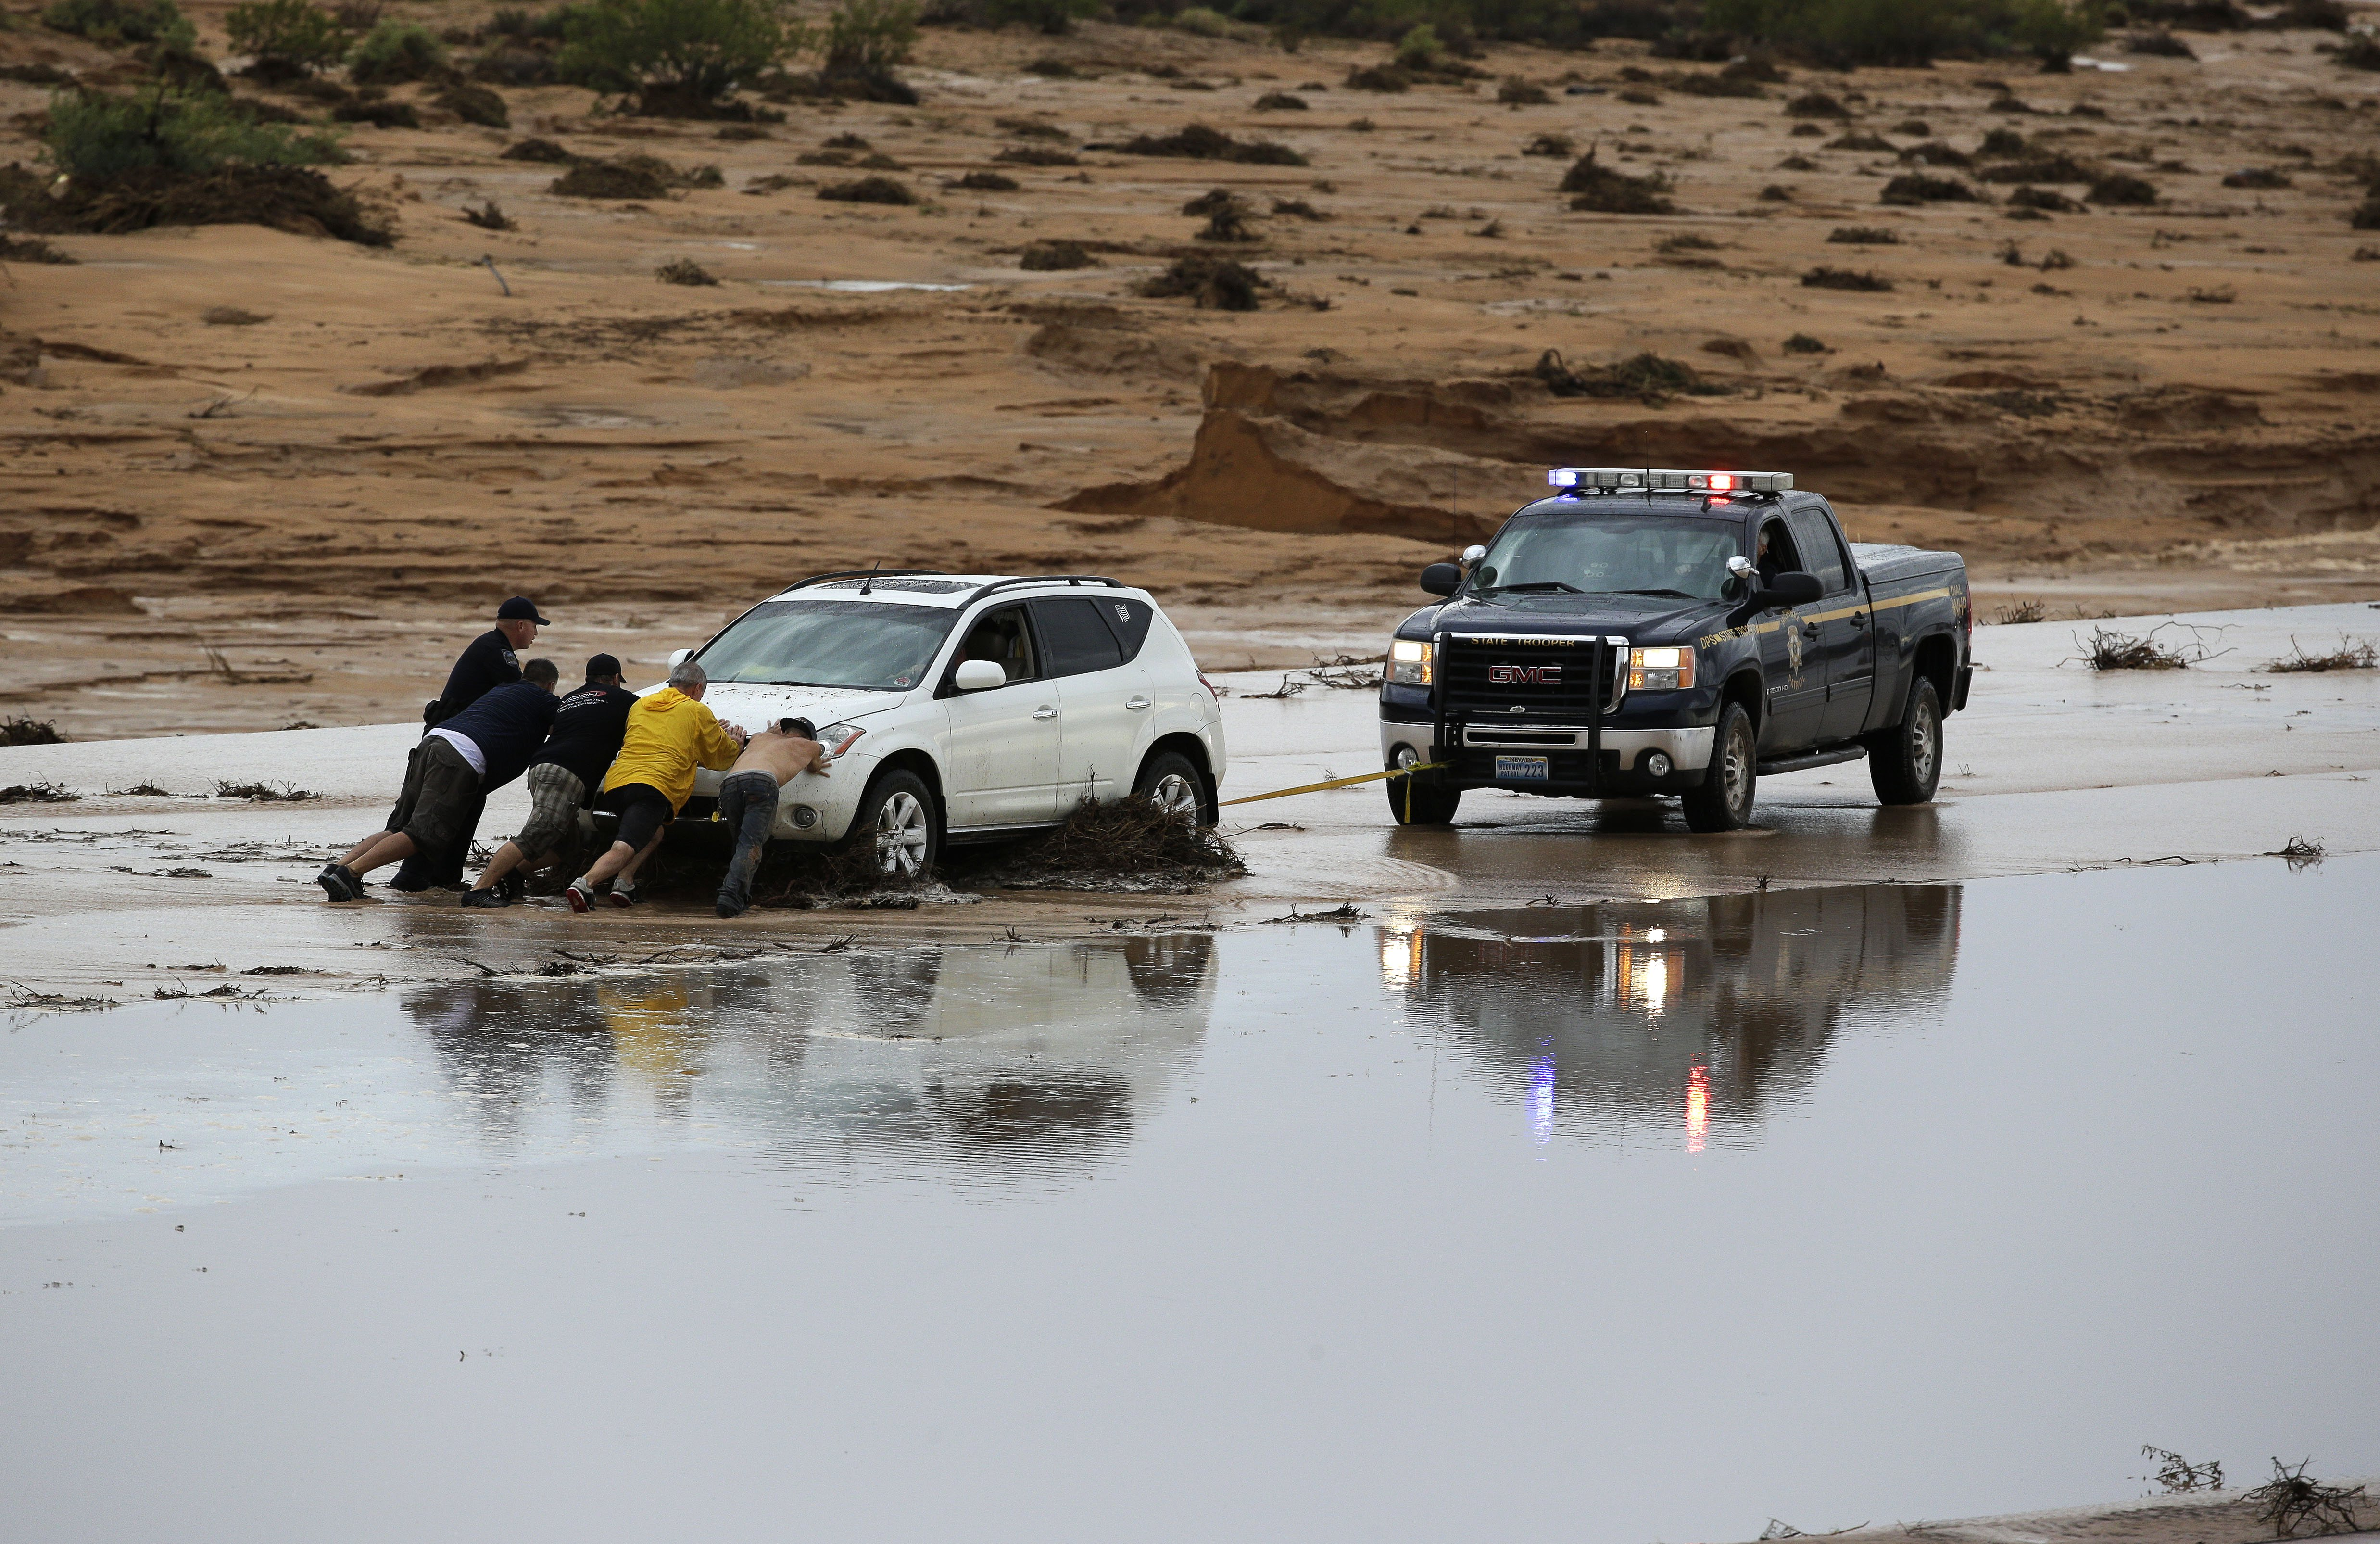 People try to free a car stuck in mud from flooding on Interstate 15 in Moapa, Nev., Sept. 8, 2014.